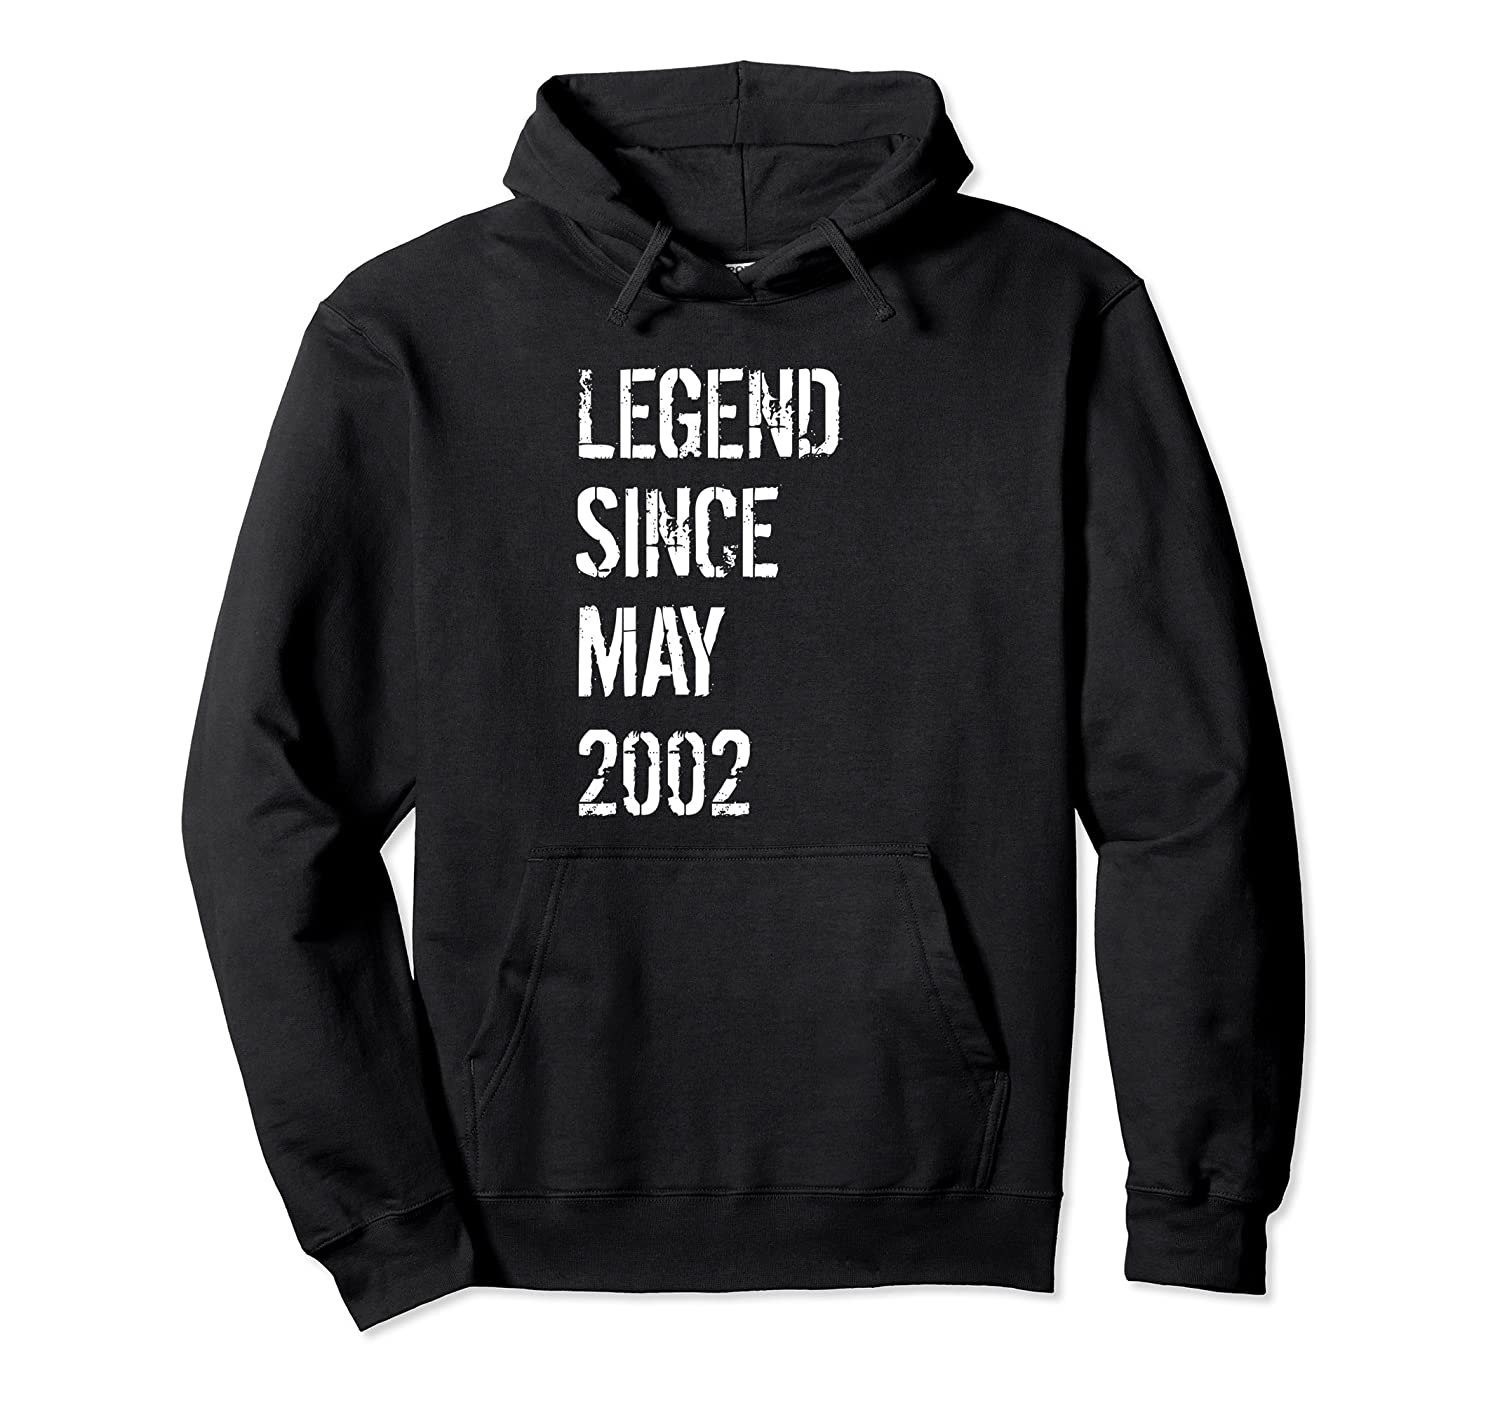 16th Birthday Gift Hoodie for Boys & Girls Born May 2002-alottee gift